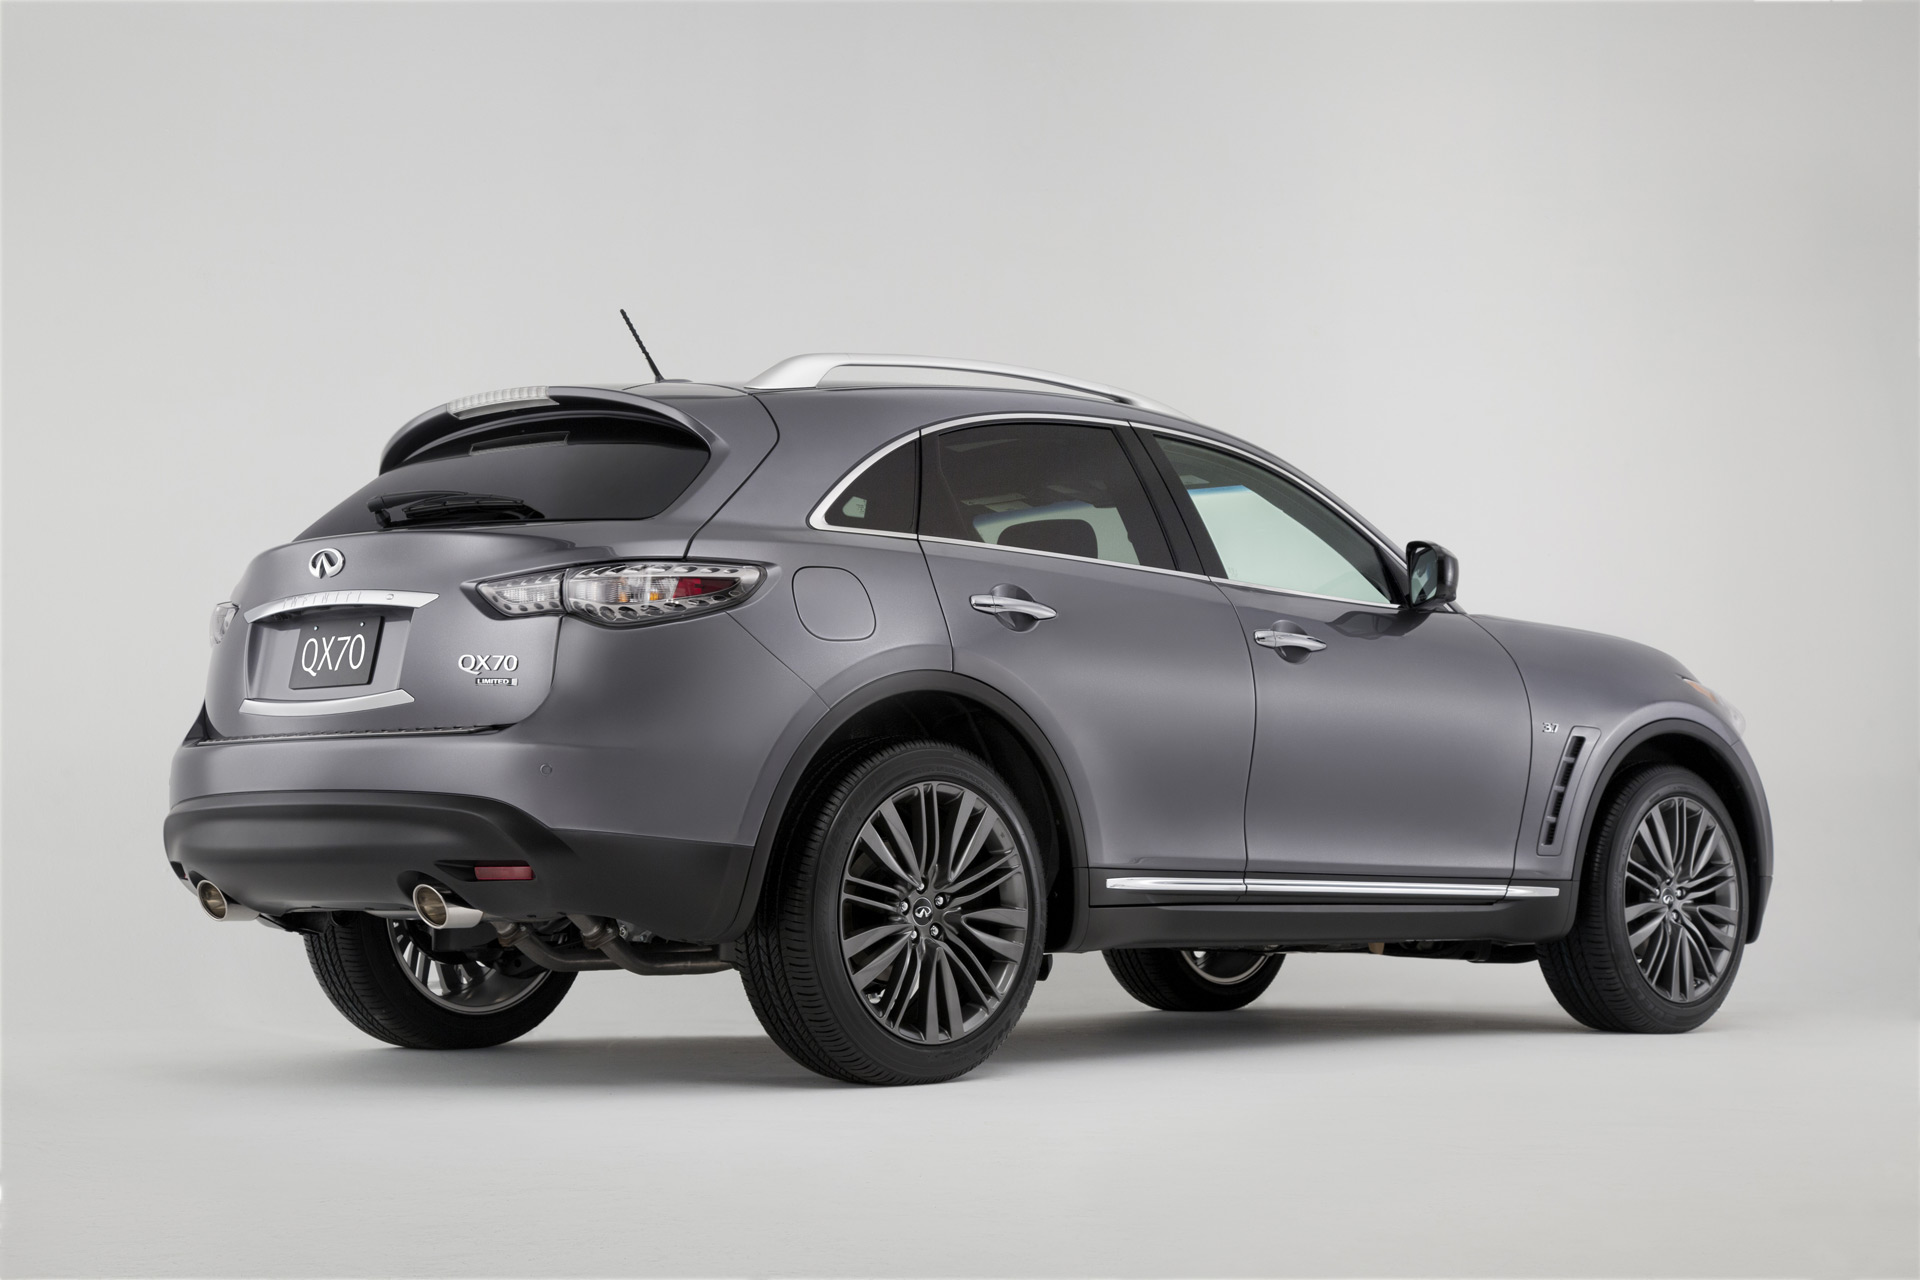 Infiniti Qx70 Gas Mileage - New Cars, Used Cars, Car Reviews and ...